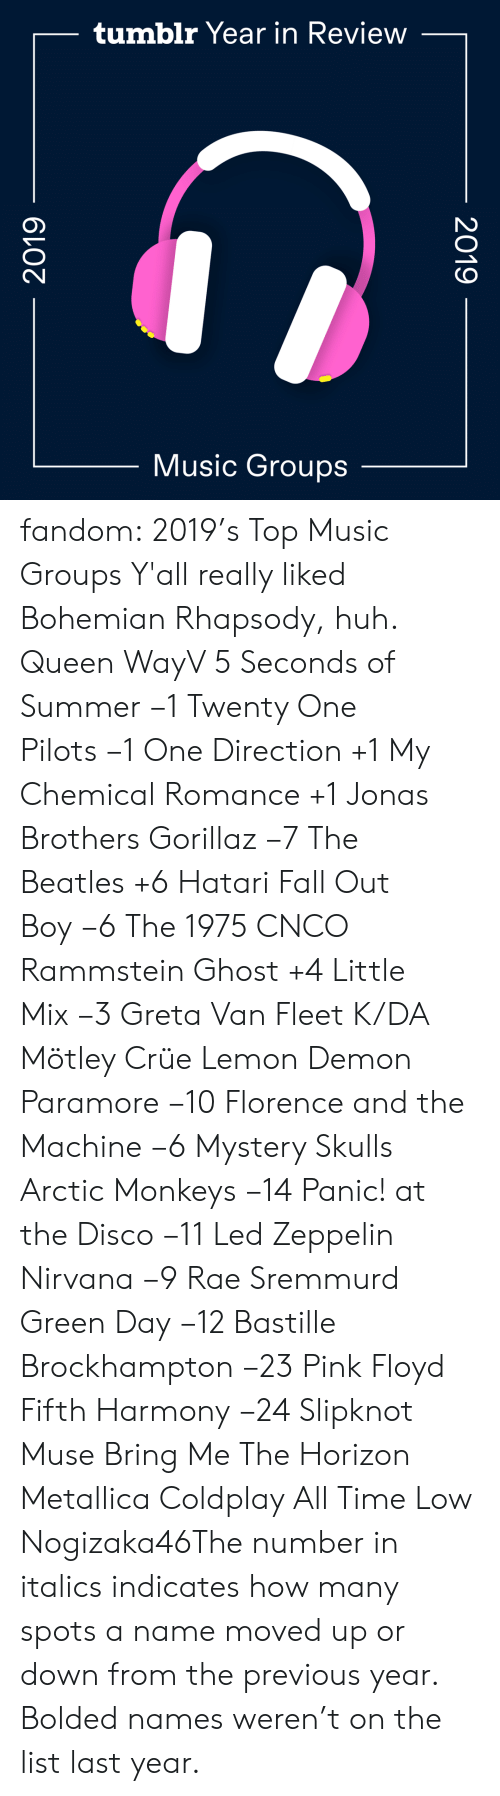 lemon: tumblr Year in Review  Music Groups  2019  2019 fandom:  2019's Top Music Groups  Y'all really liked Bohemian Rhapsody, huh.  Queen  WayV  5 Seconds of Summer −1  Twenty One Pilots −1  One Direction +1  My Chemical Romance +1  Jonas Brothers  Gorillaz −7  The Beatles +6  Hatari  Fall Out Boy −6  The 1975  CNCO  Rammstein  Ghost +4  Little Mix −3  Greta Van Fleet  K/DA  Mötley Crüe  Lemon Demon  Paramore −10  Florence and the Machine −6  Mystery Skulls  Arctic Monkeys −14  Panic! at the Disco −11  Led Zeppelin   Nirvana −9  Rae Sremmurd  Green Day −12  Bastille  Brockhampton −23  Pink Floyd  Fifth Harmony −24  Slipknot  Muse  Bring Me The Horizon  Metallica  Coldplay  All Time Low  Nogizaka46The number in italics indicates how many spots a name moved up or down from the previous year. Bolded names weren't on the list last year.